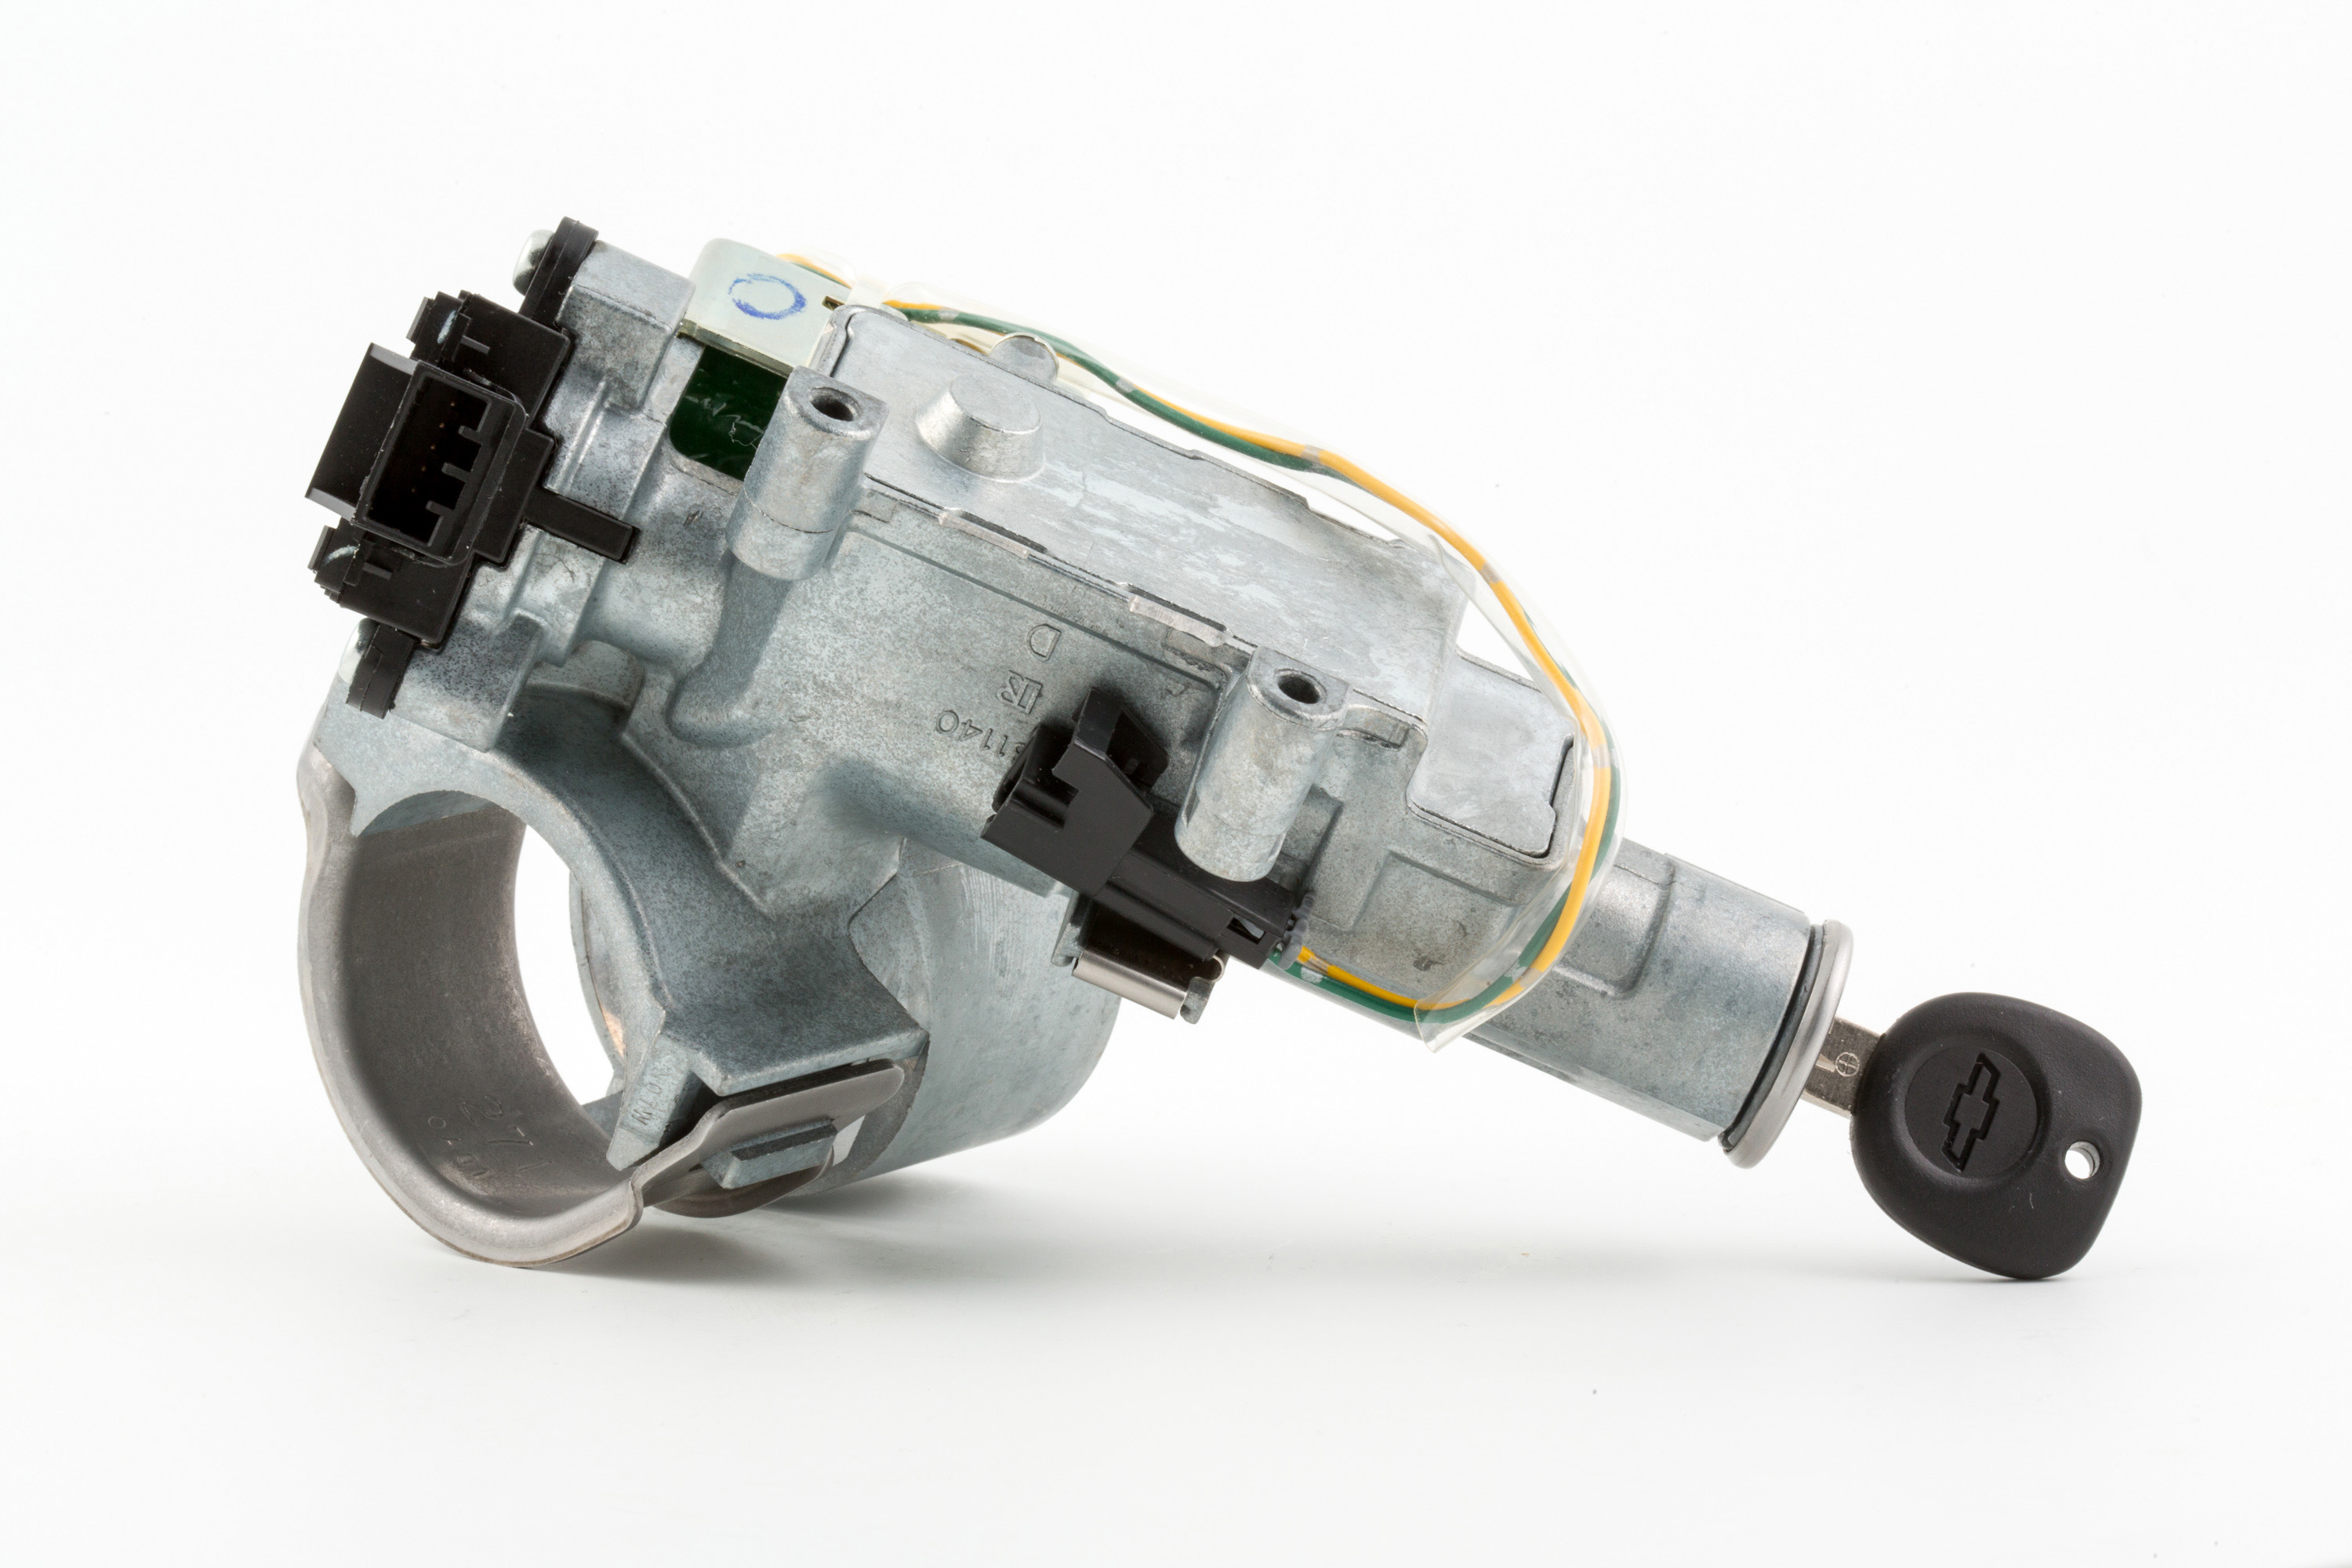 Gm Ignition Switch Saga Turning Point Delphi Turns Over